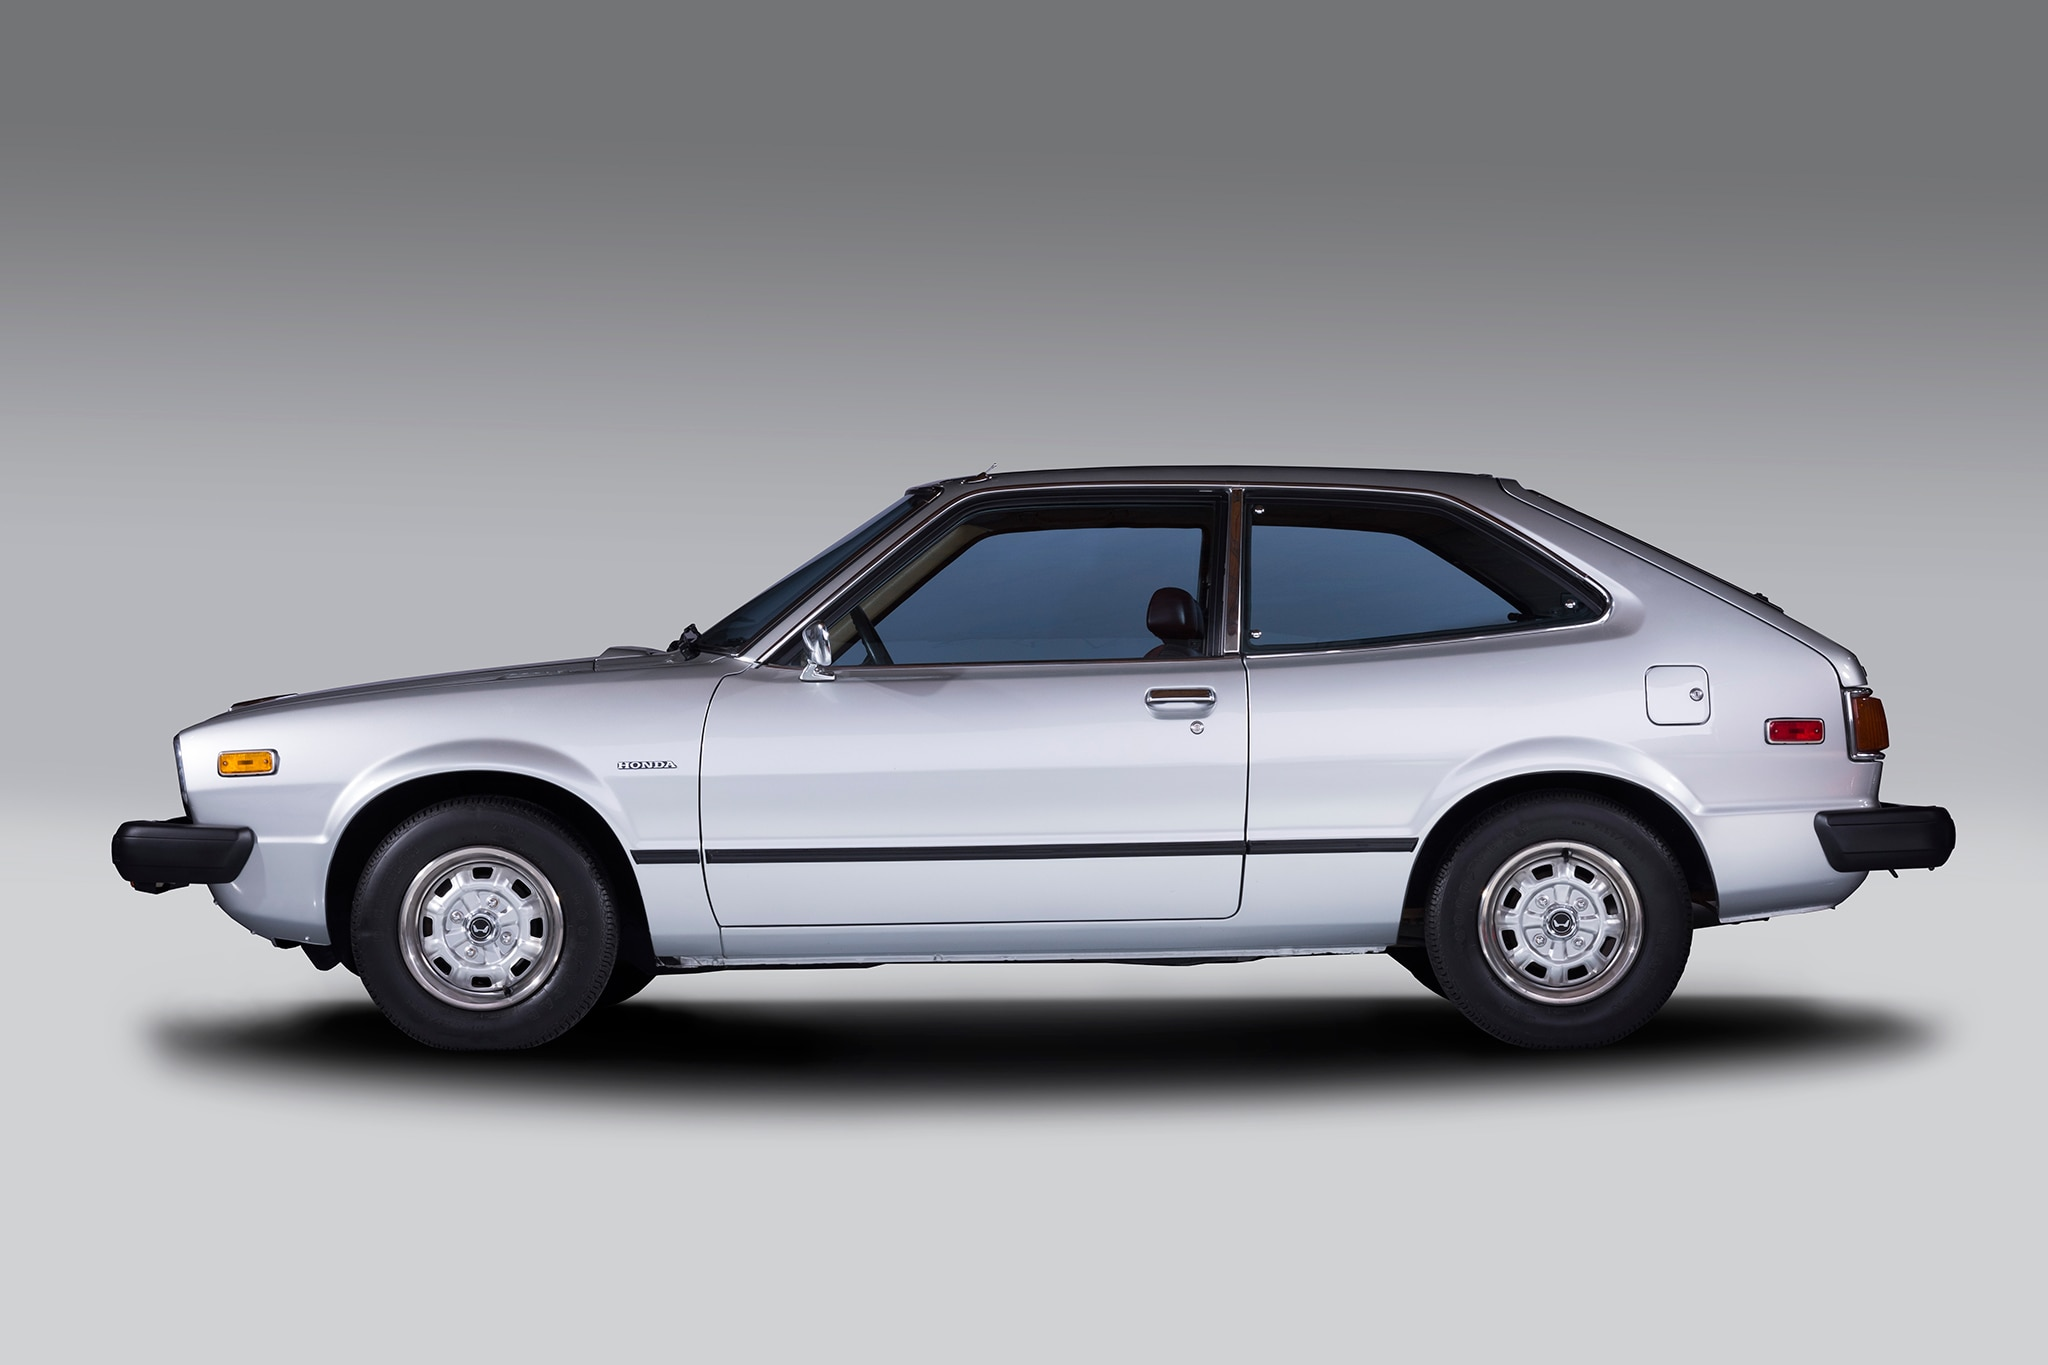 1976 Honda Accord first generation 02 - Automobile